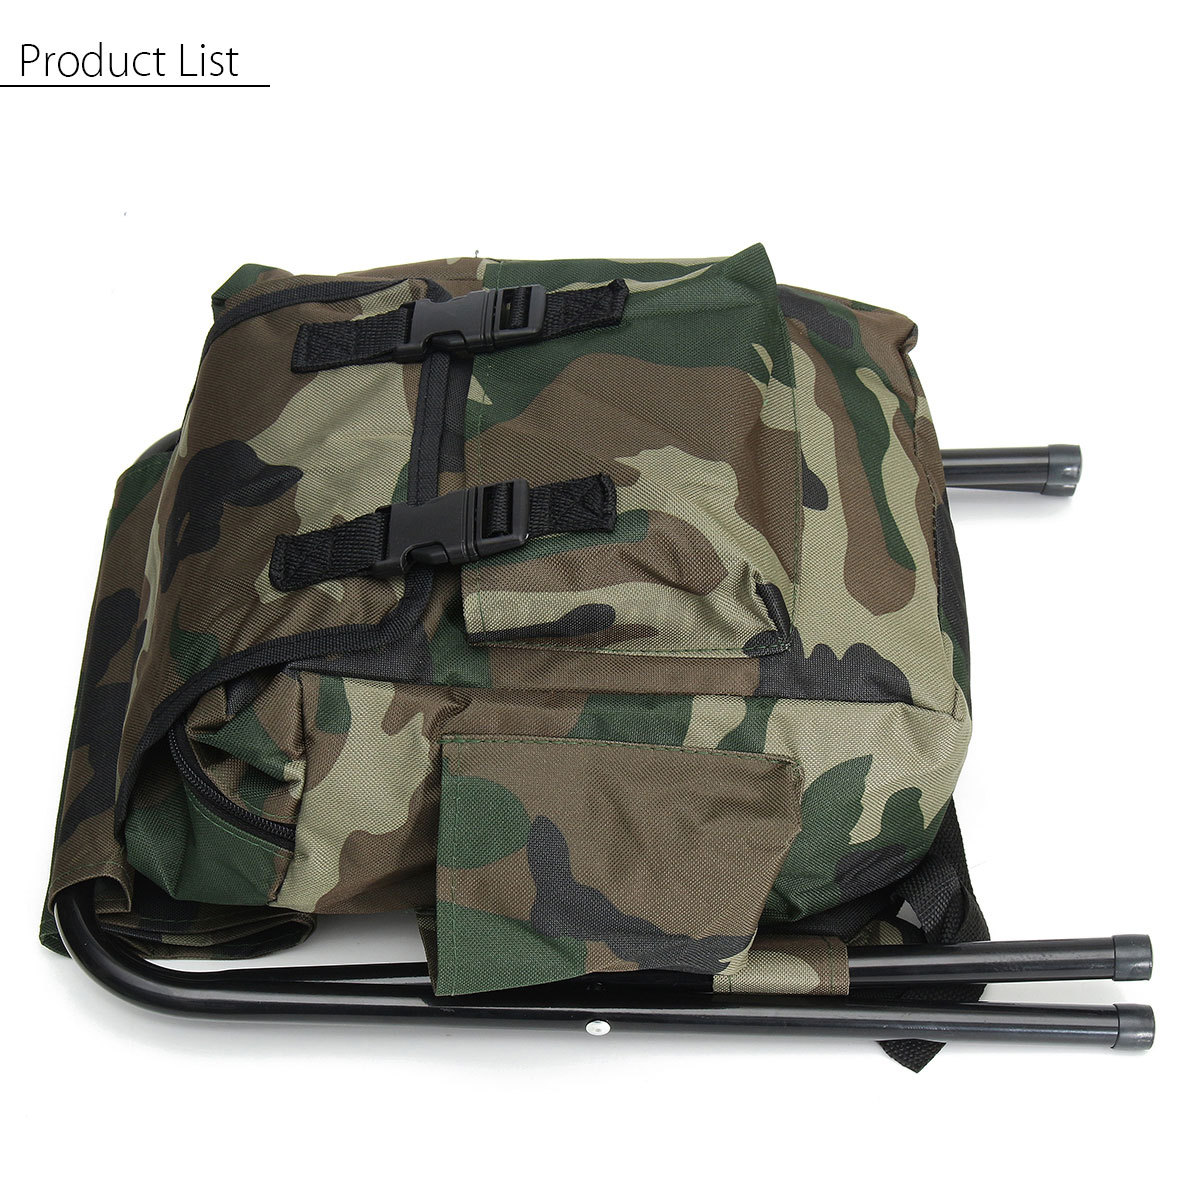 fishing backpack chair exercise youtube outdoor tackle bag box camping foldable